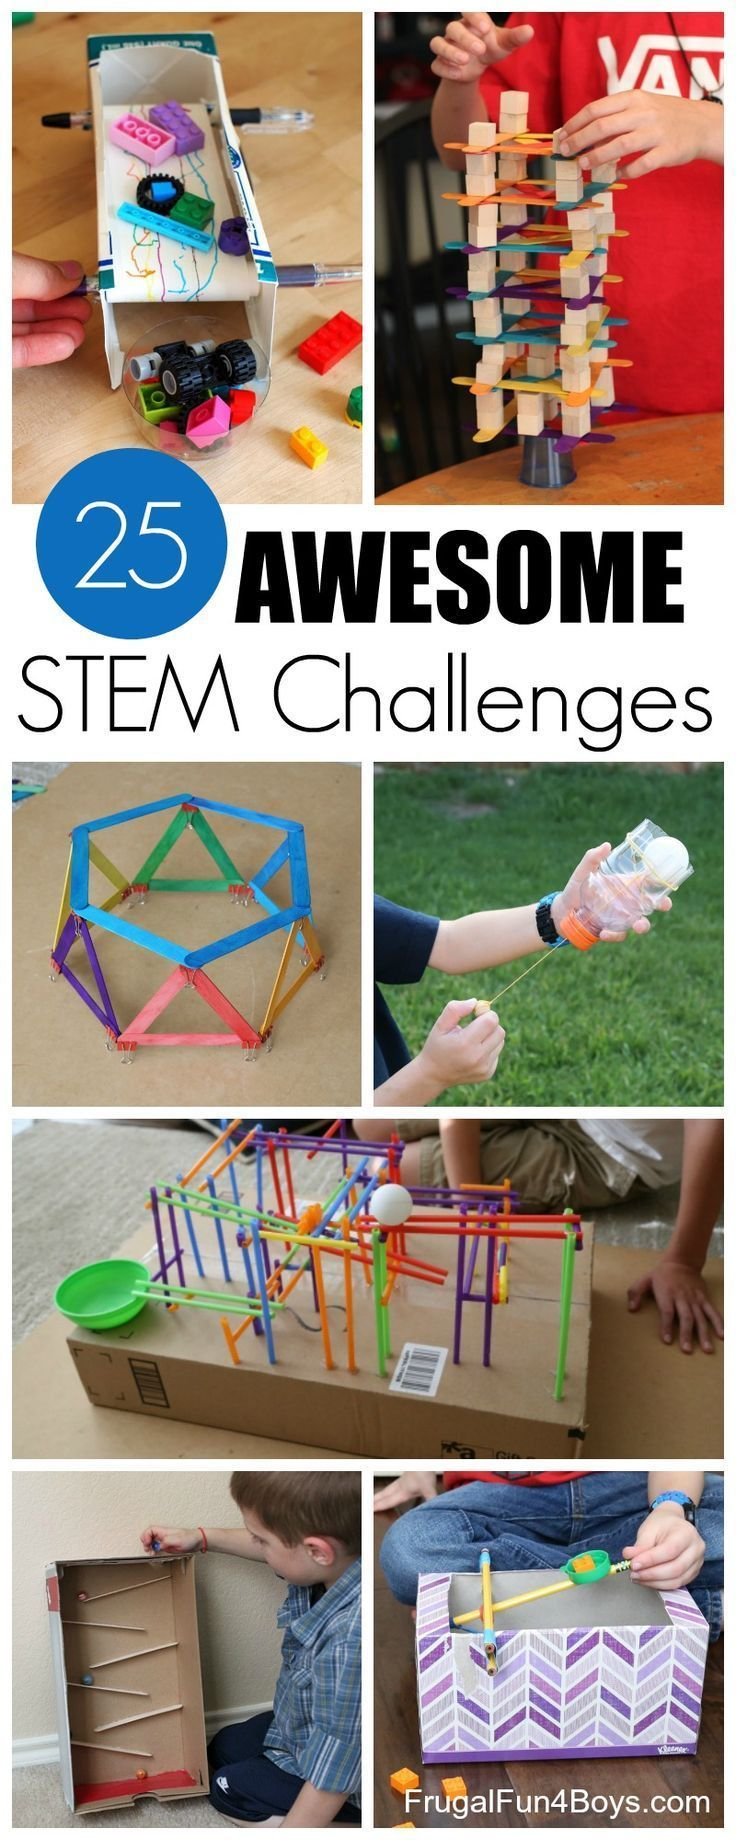 30+ Awesome STEM Challenges for Kids (with Inexpensive or